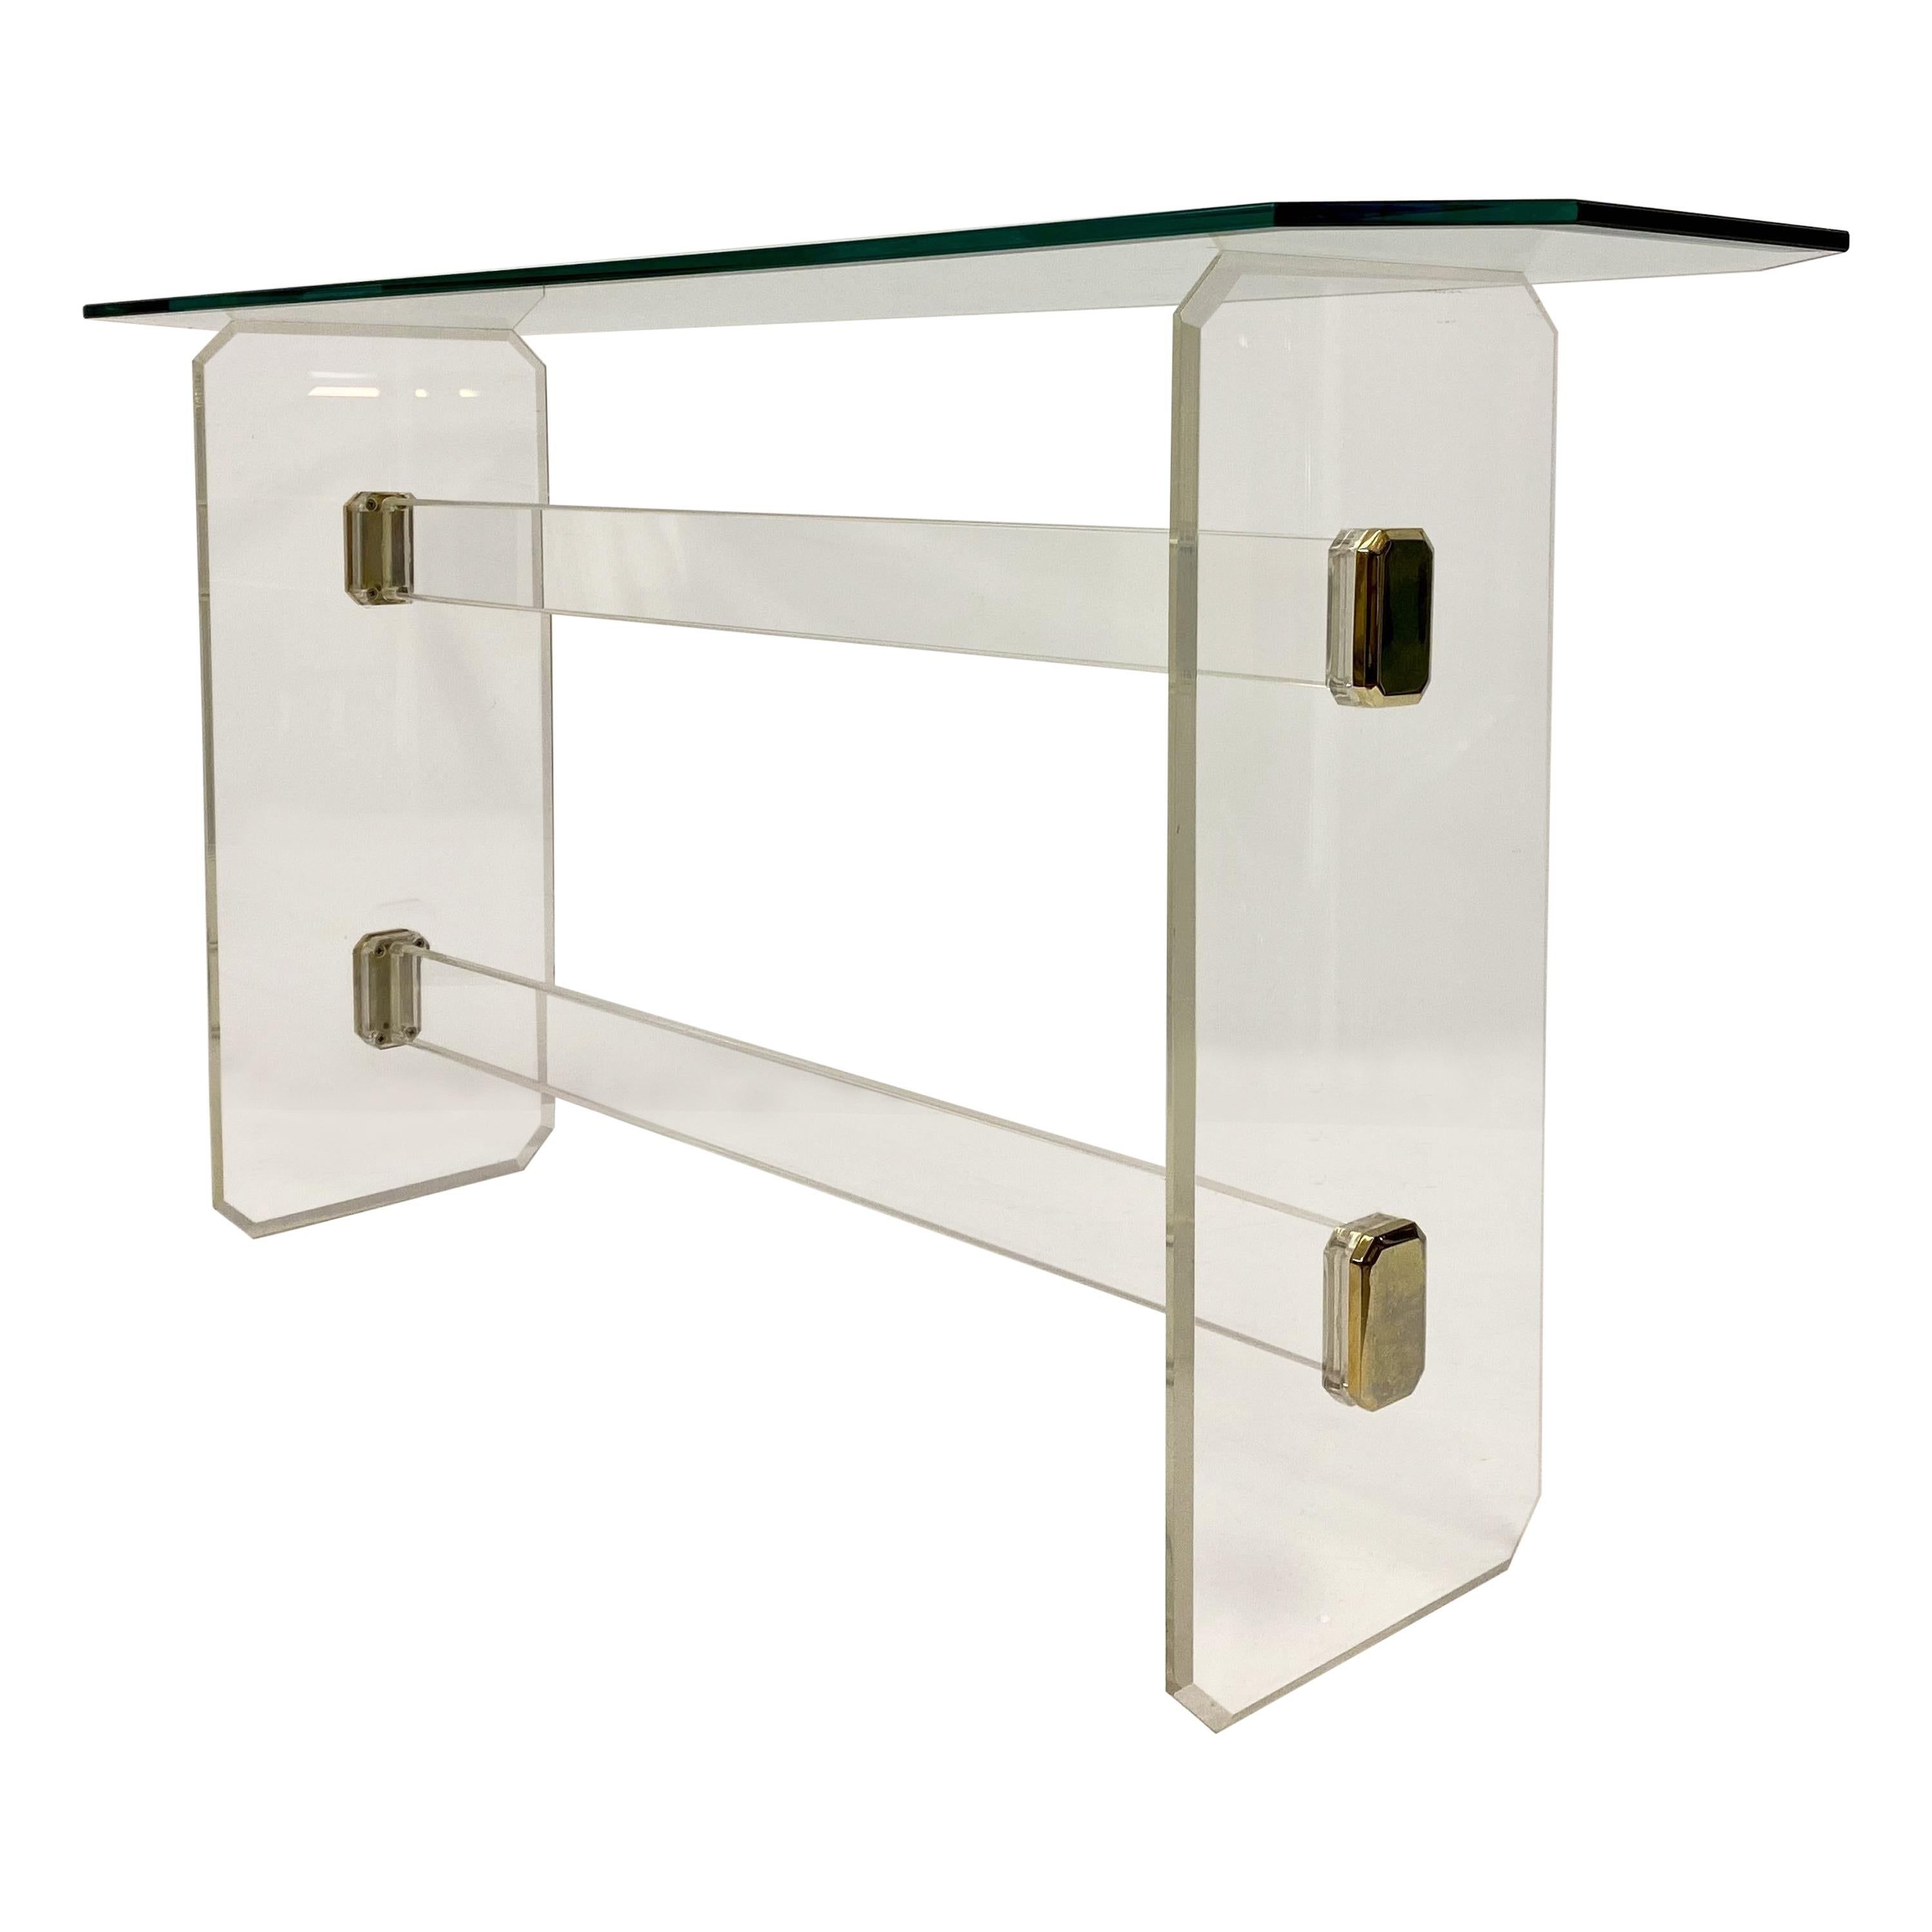 1980s Lucite and Brass Console Table